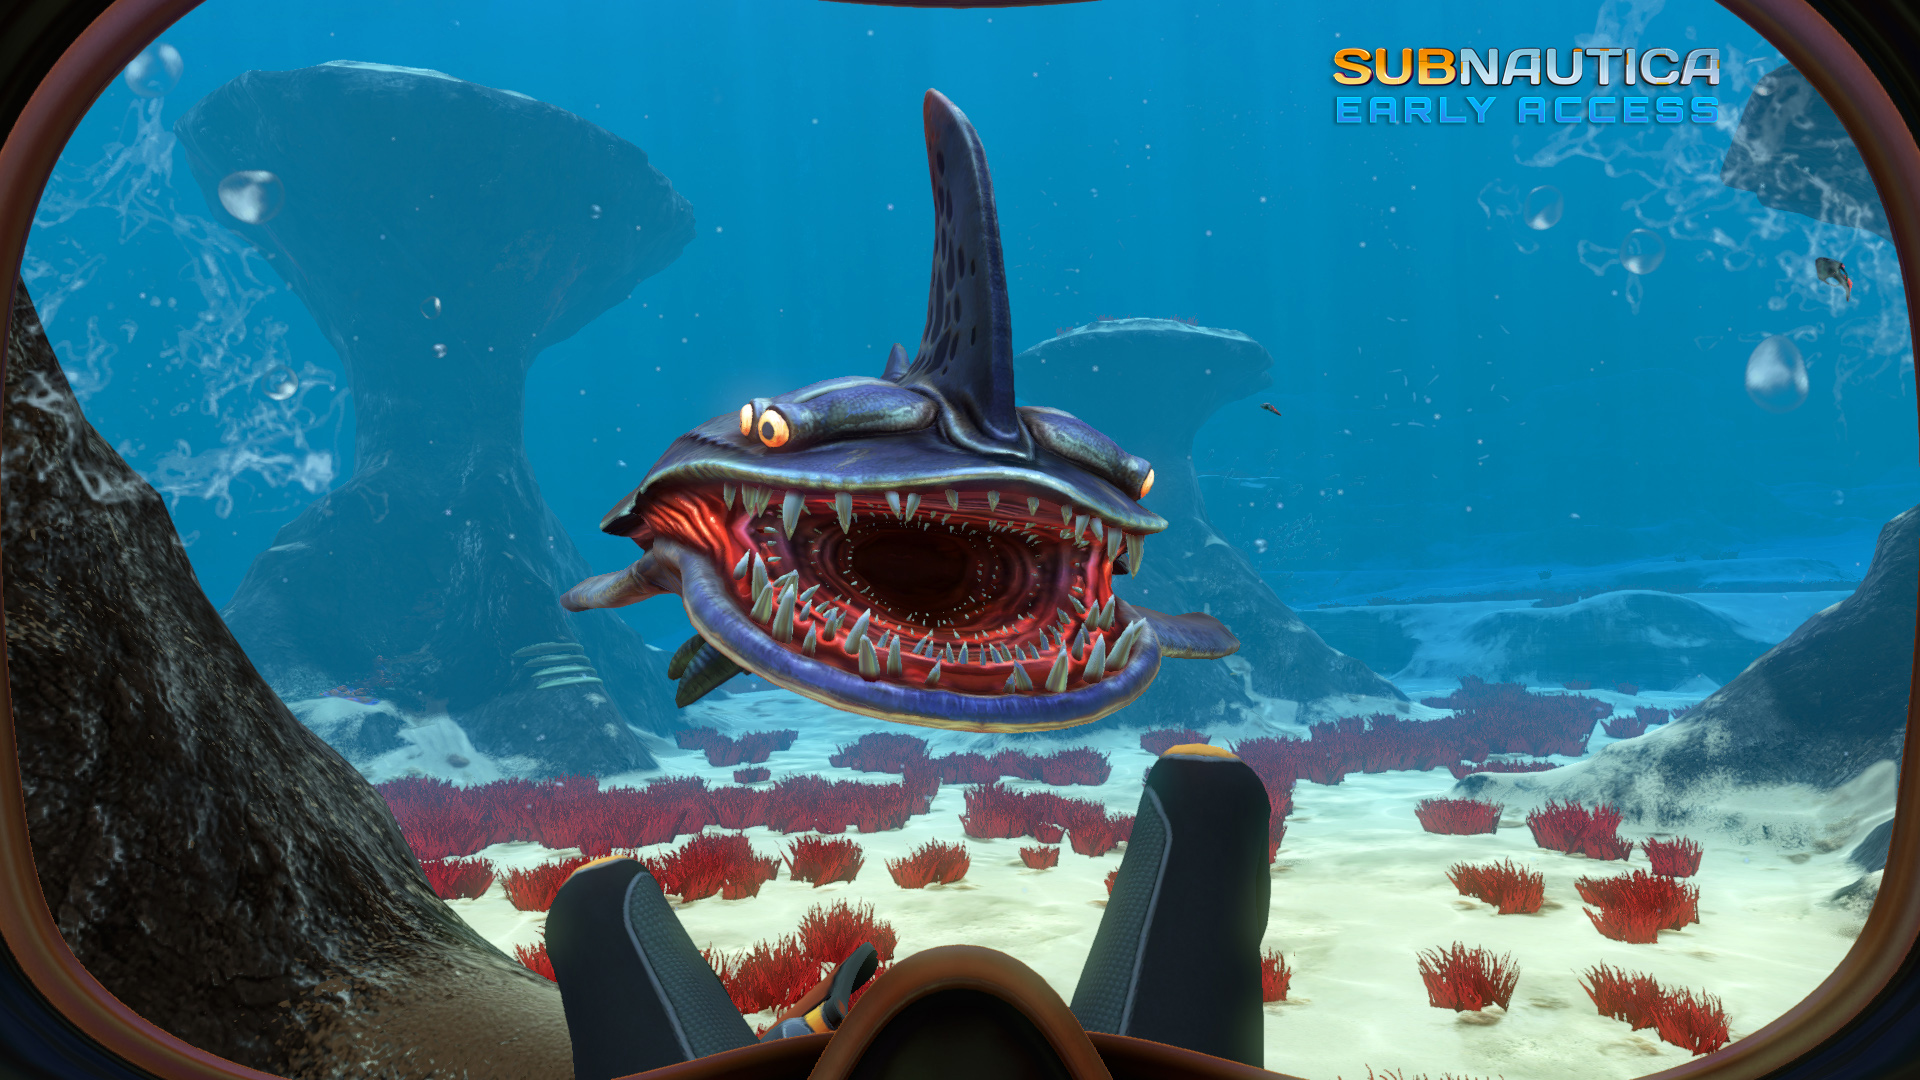 subnautica is a new underwater exploration fps from natural